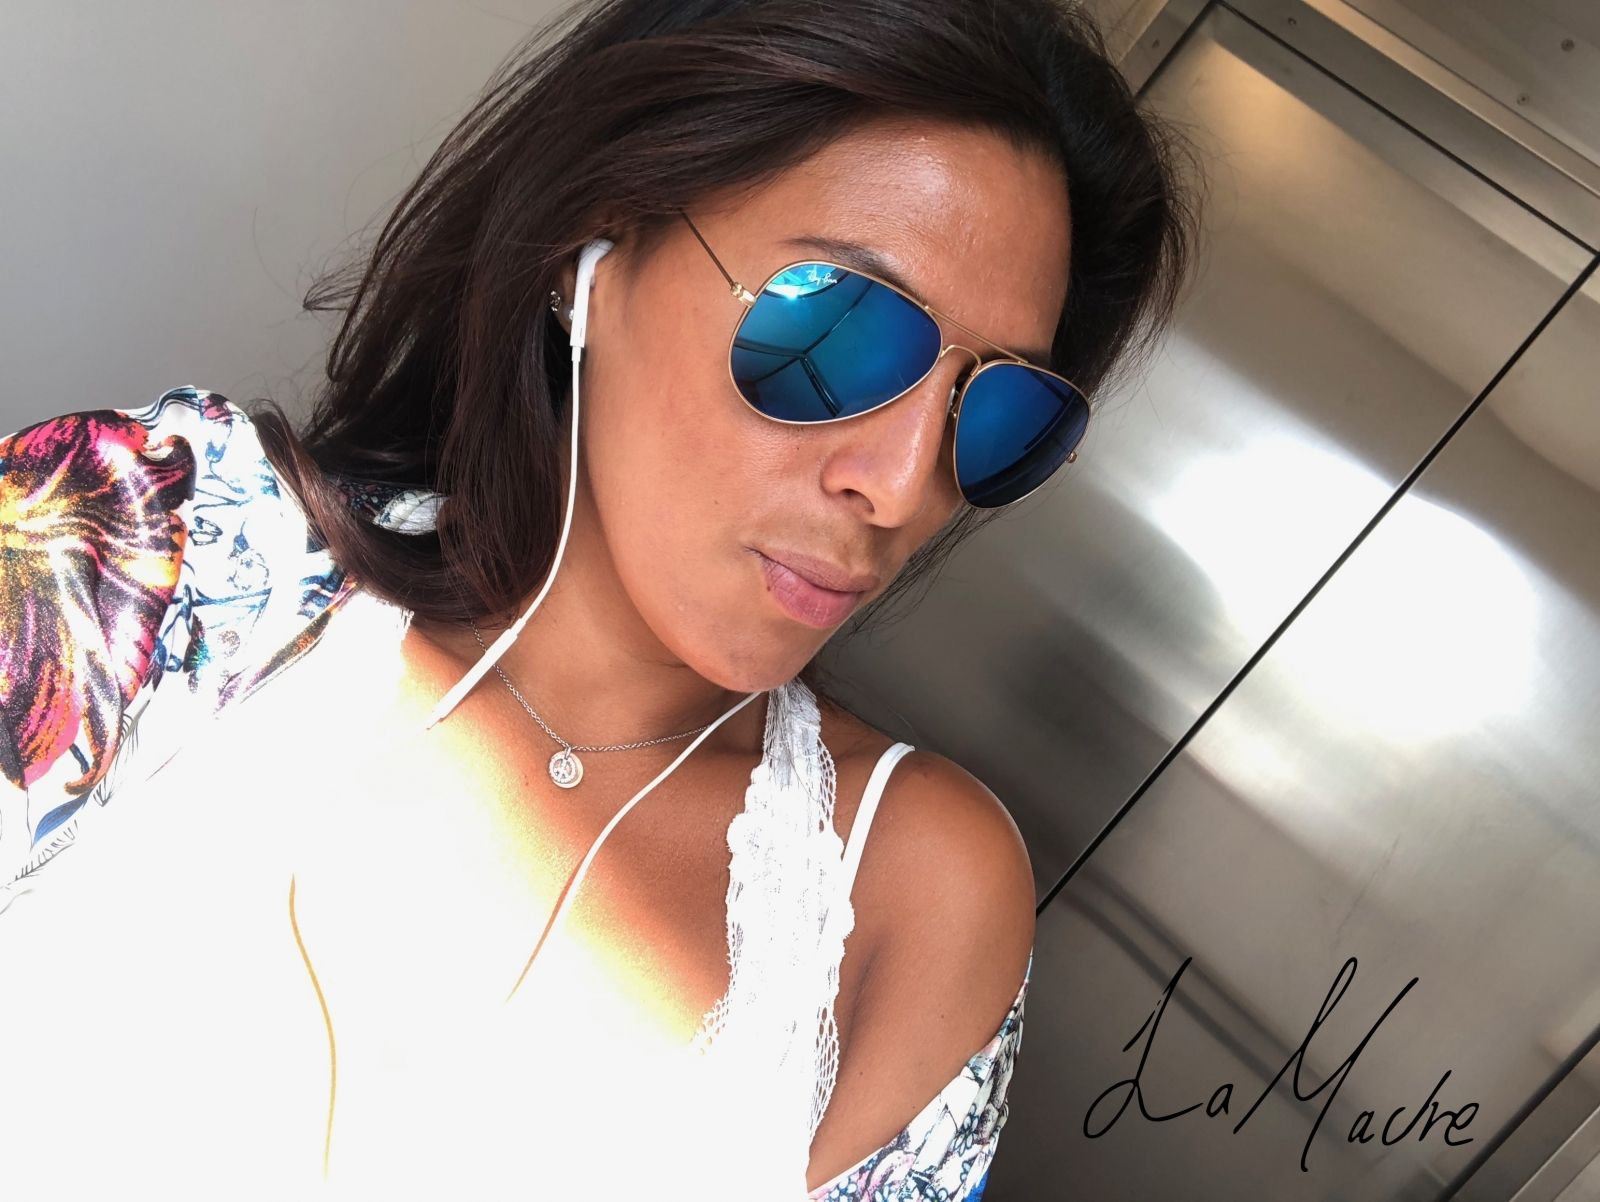 latina-cool-beauty